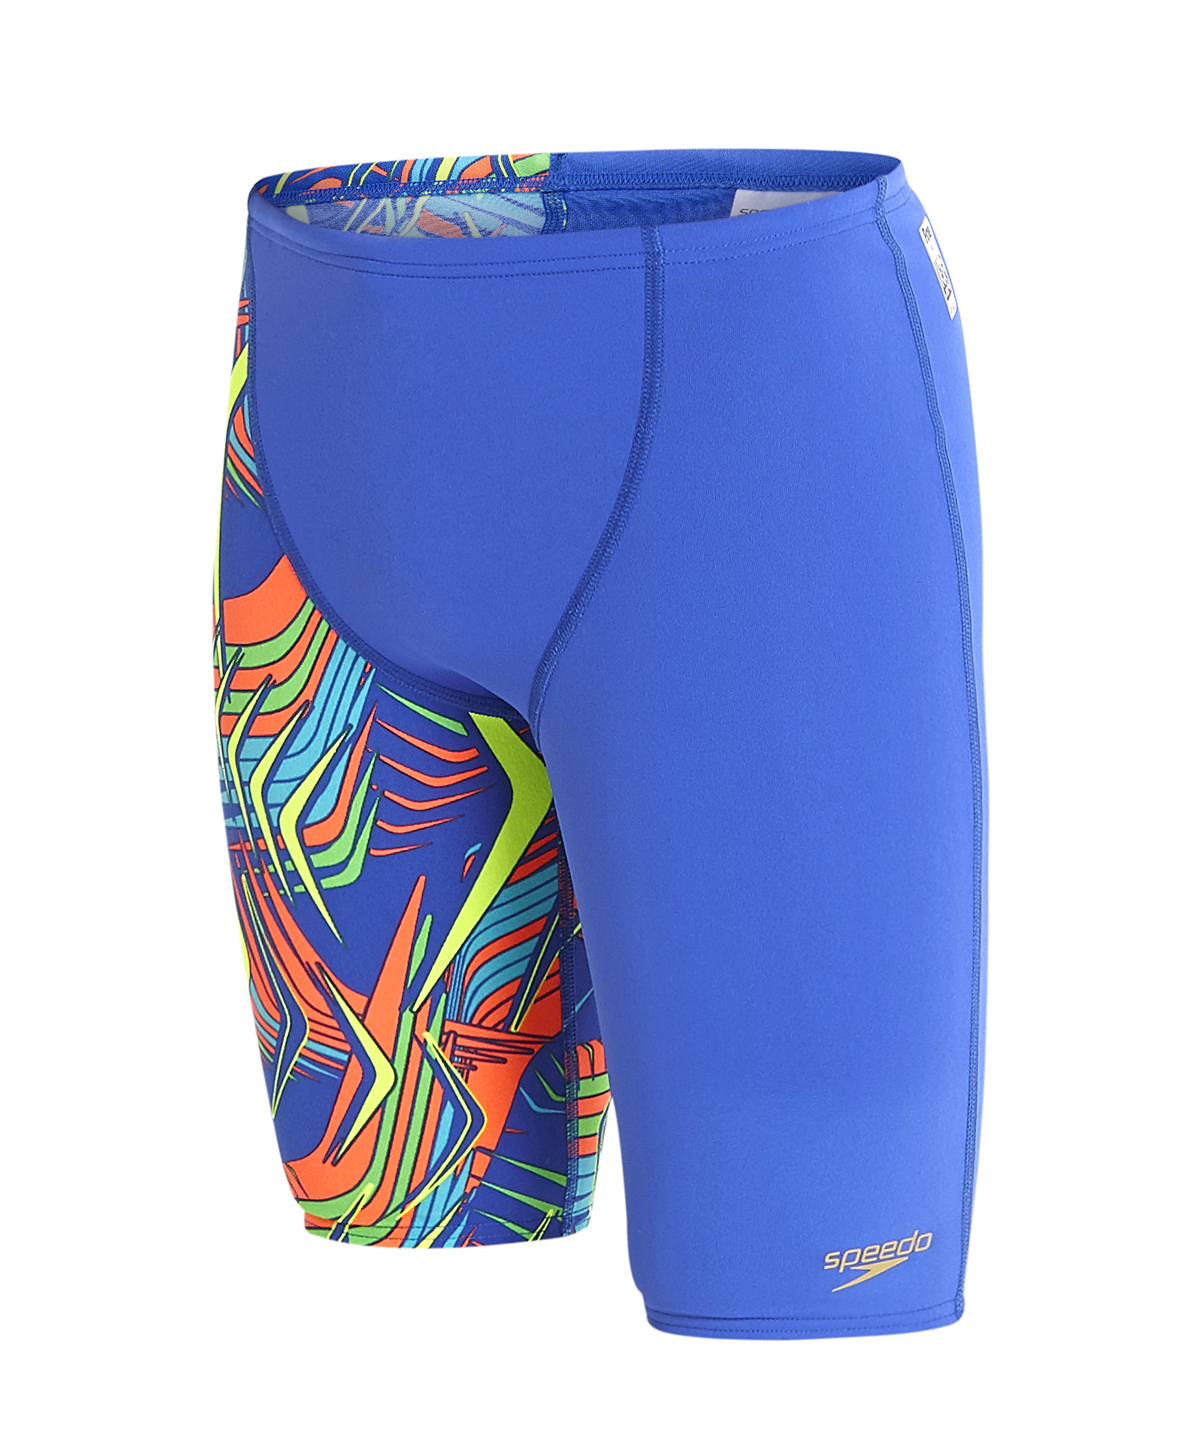 Speedo Boys Fastskin Endurance+ High Waisted Jammer